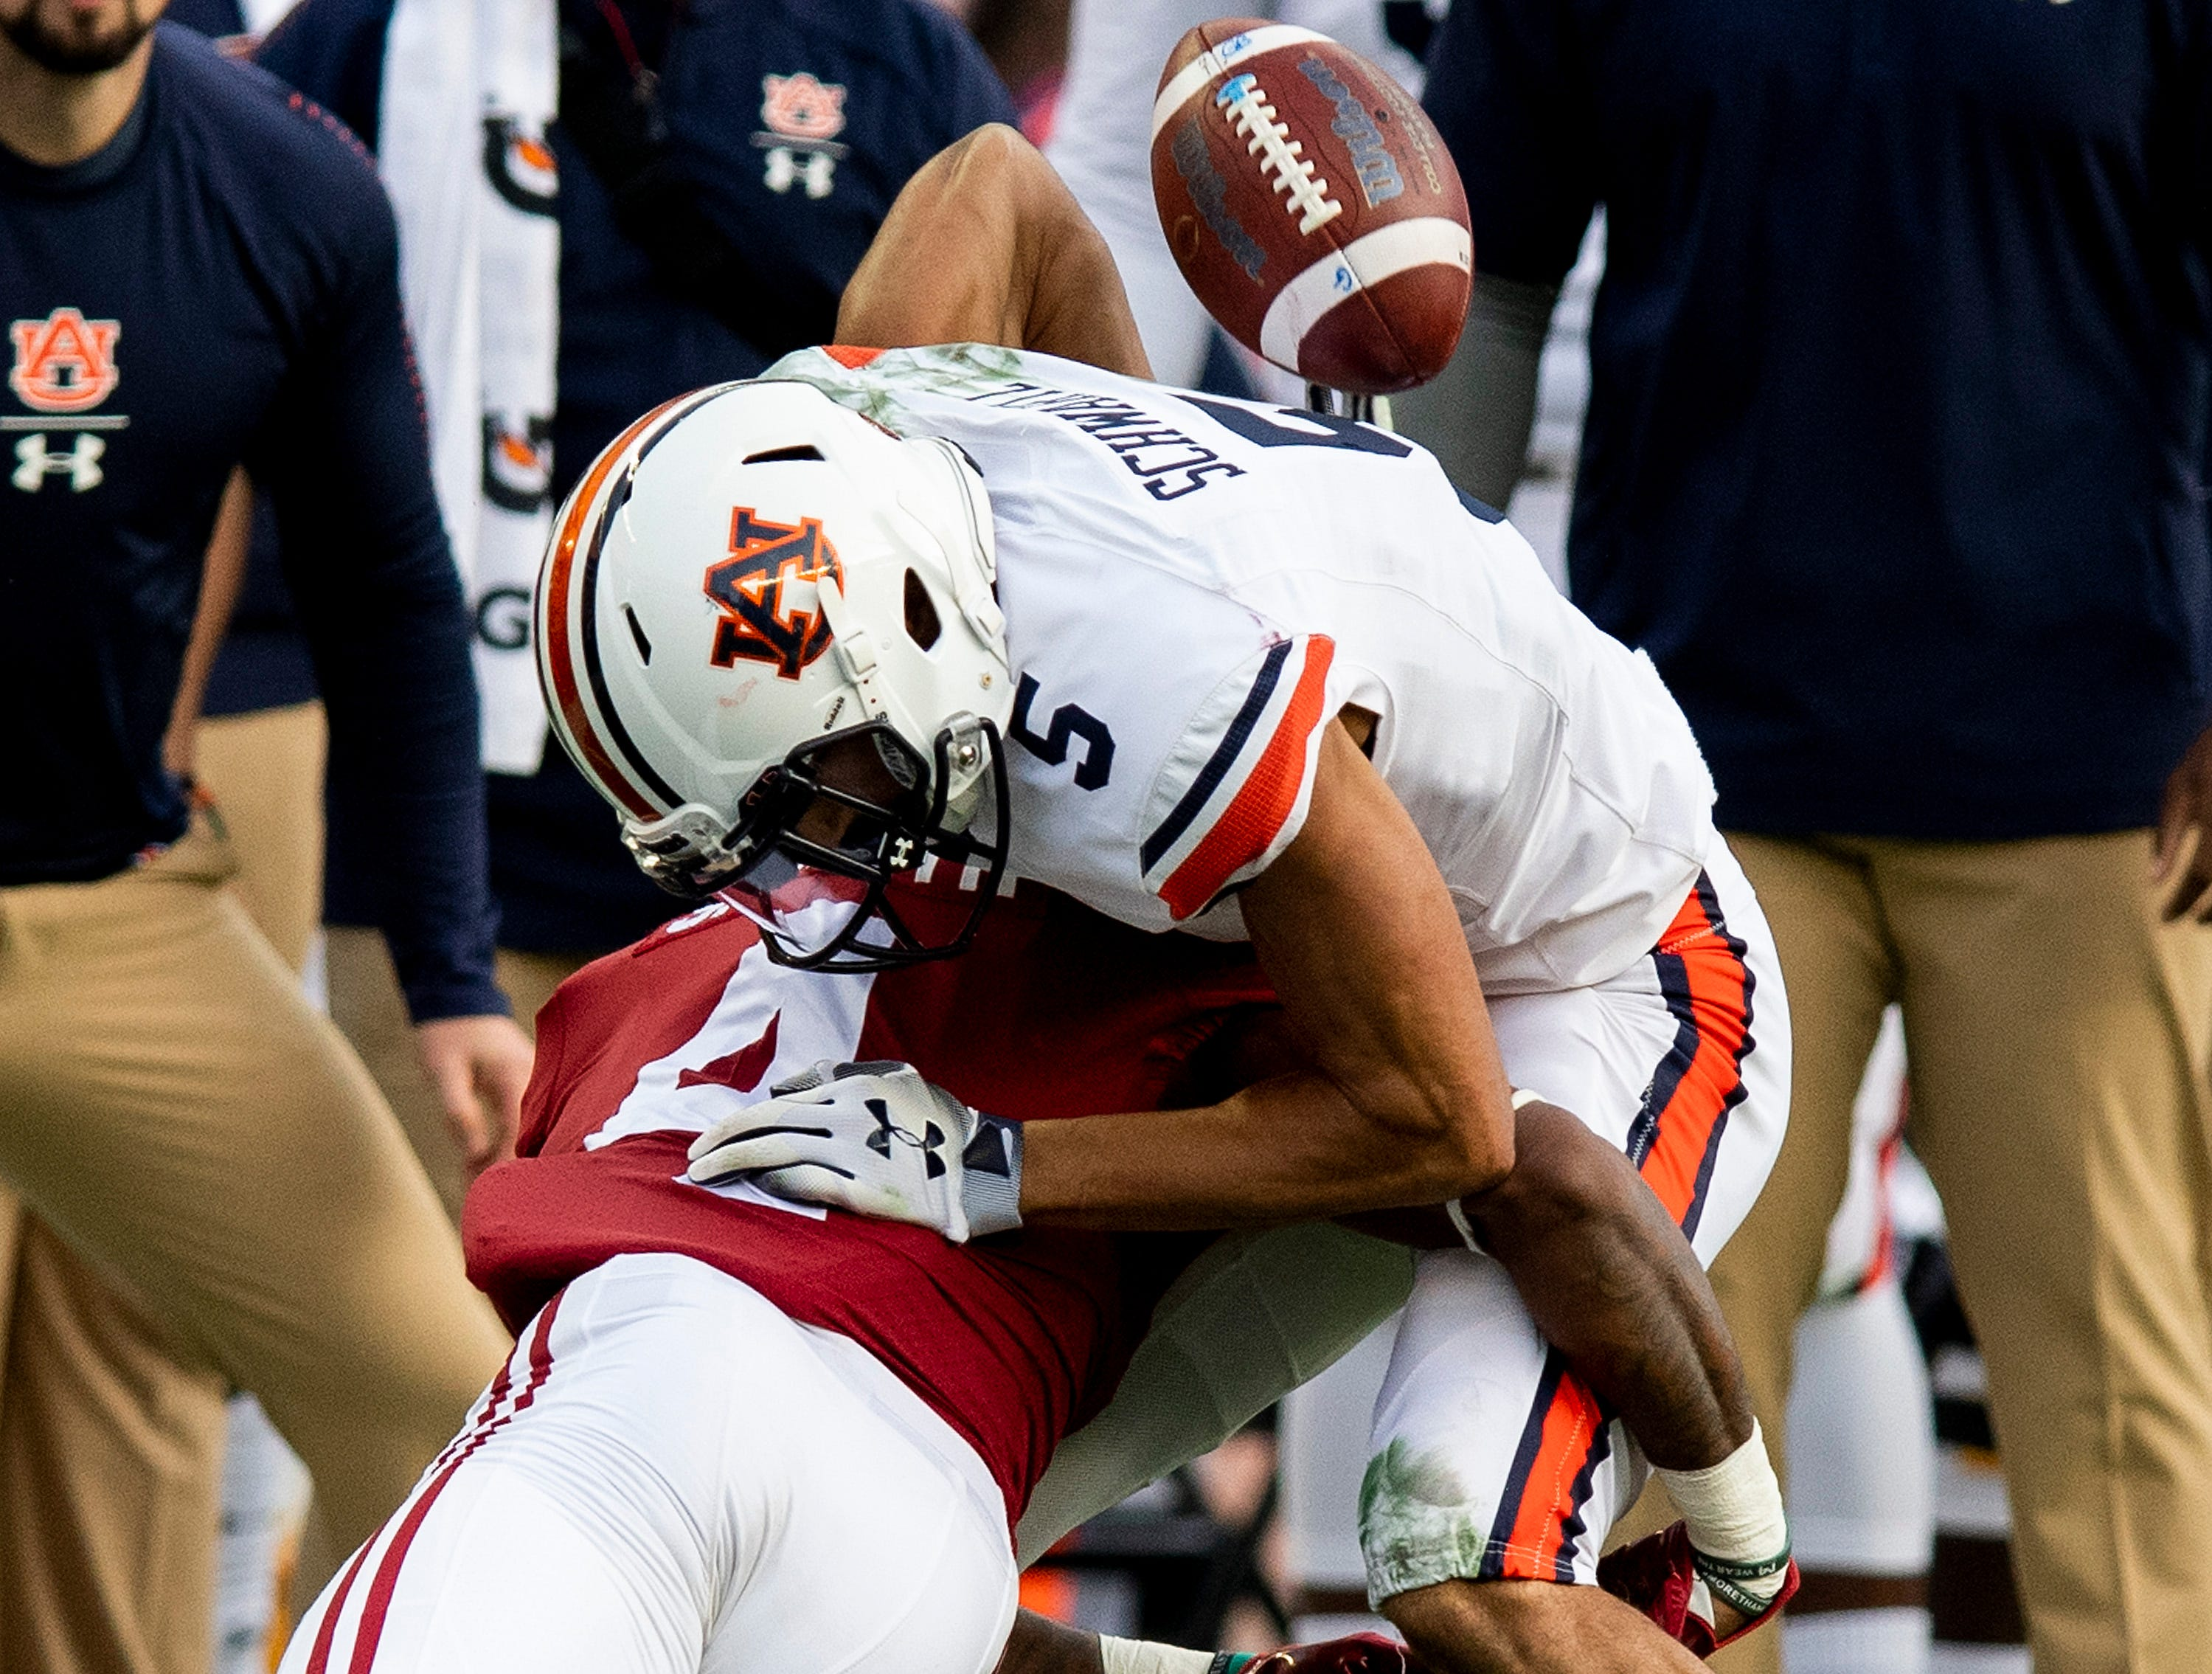 The ball pops out of bounds as Alabama defensive back Saivion Smith (4) hits Auburn wide receiver Anthony Schwartz (5) in first half action during the Iron Bowl at Bryant-Denny Stadium in Tuscaloosa, Ala., on Saturday November 24, 2018.